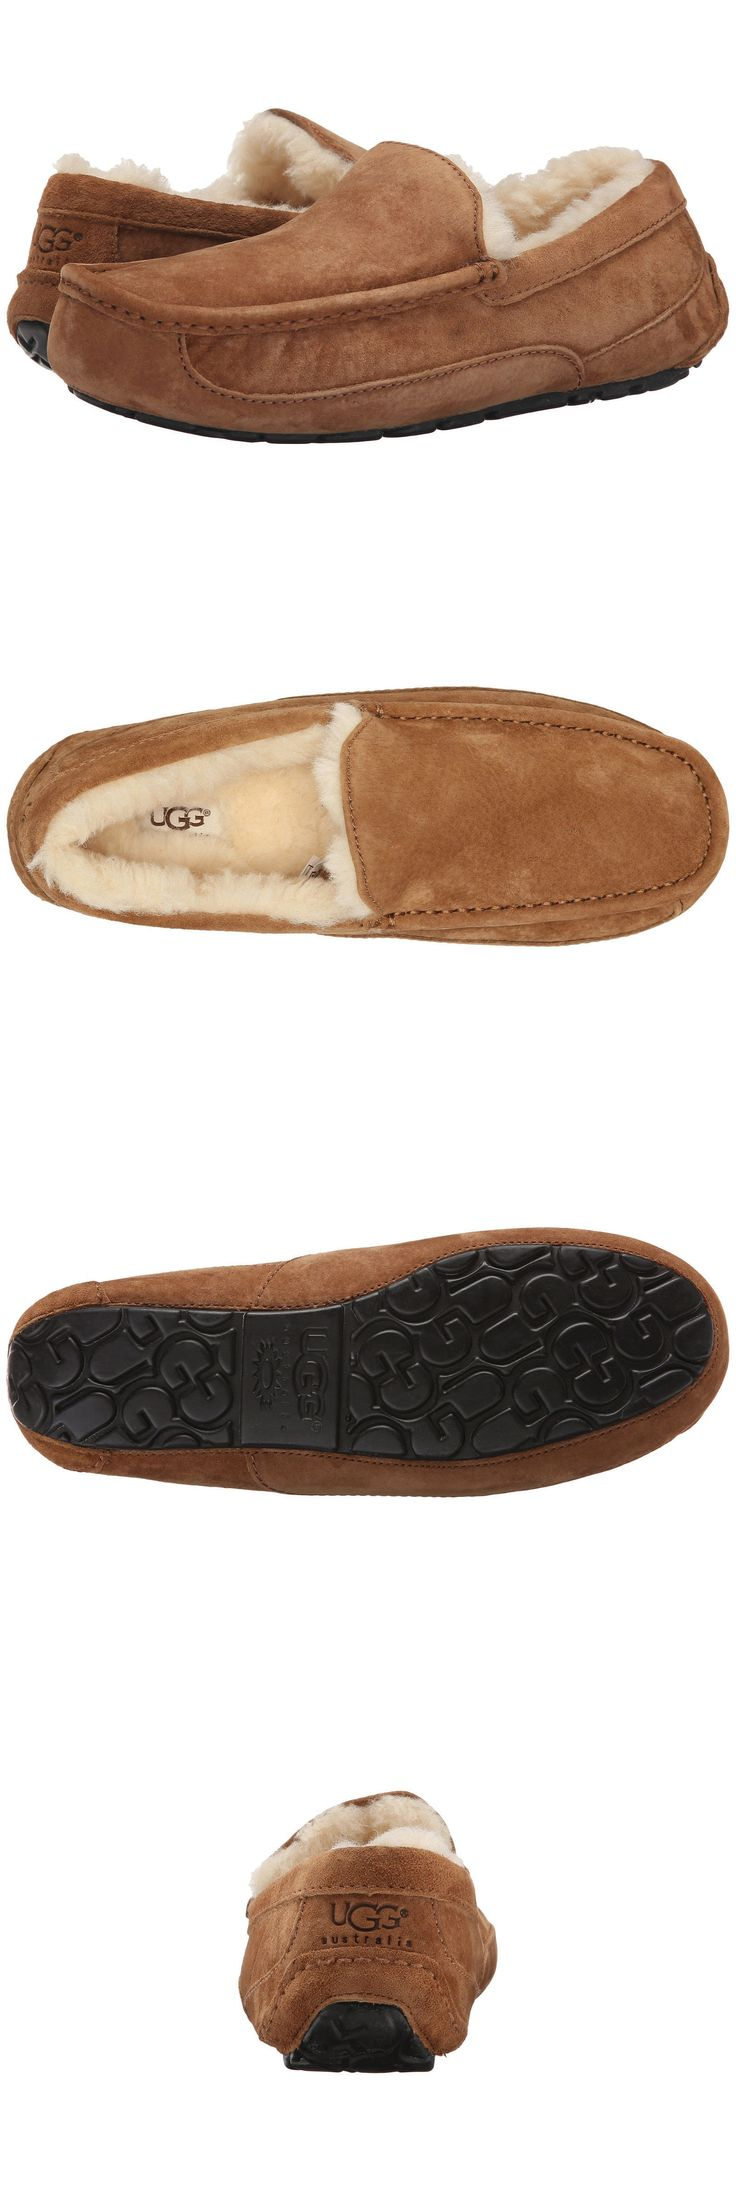 ugg ascot slippers size 12